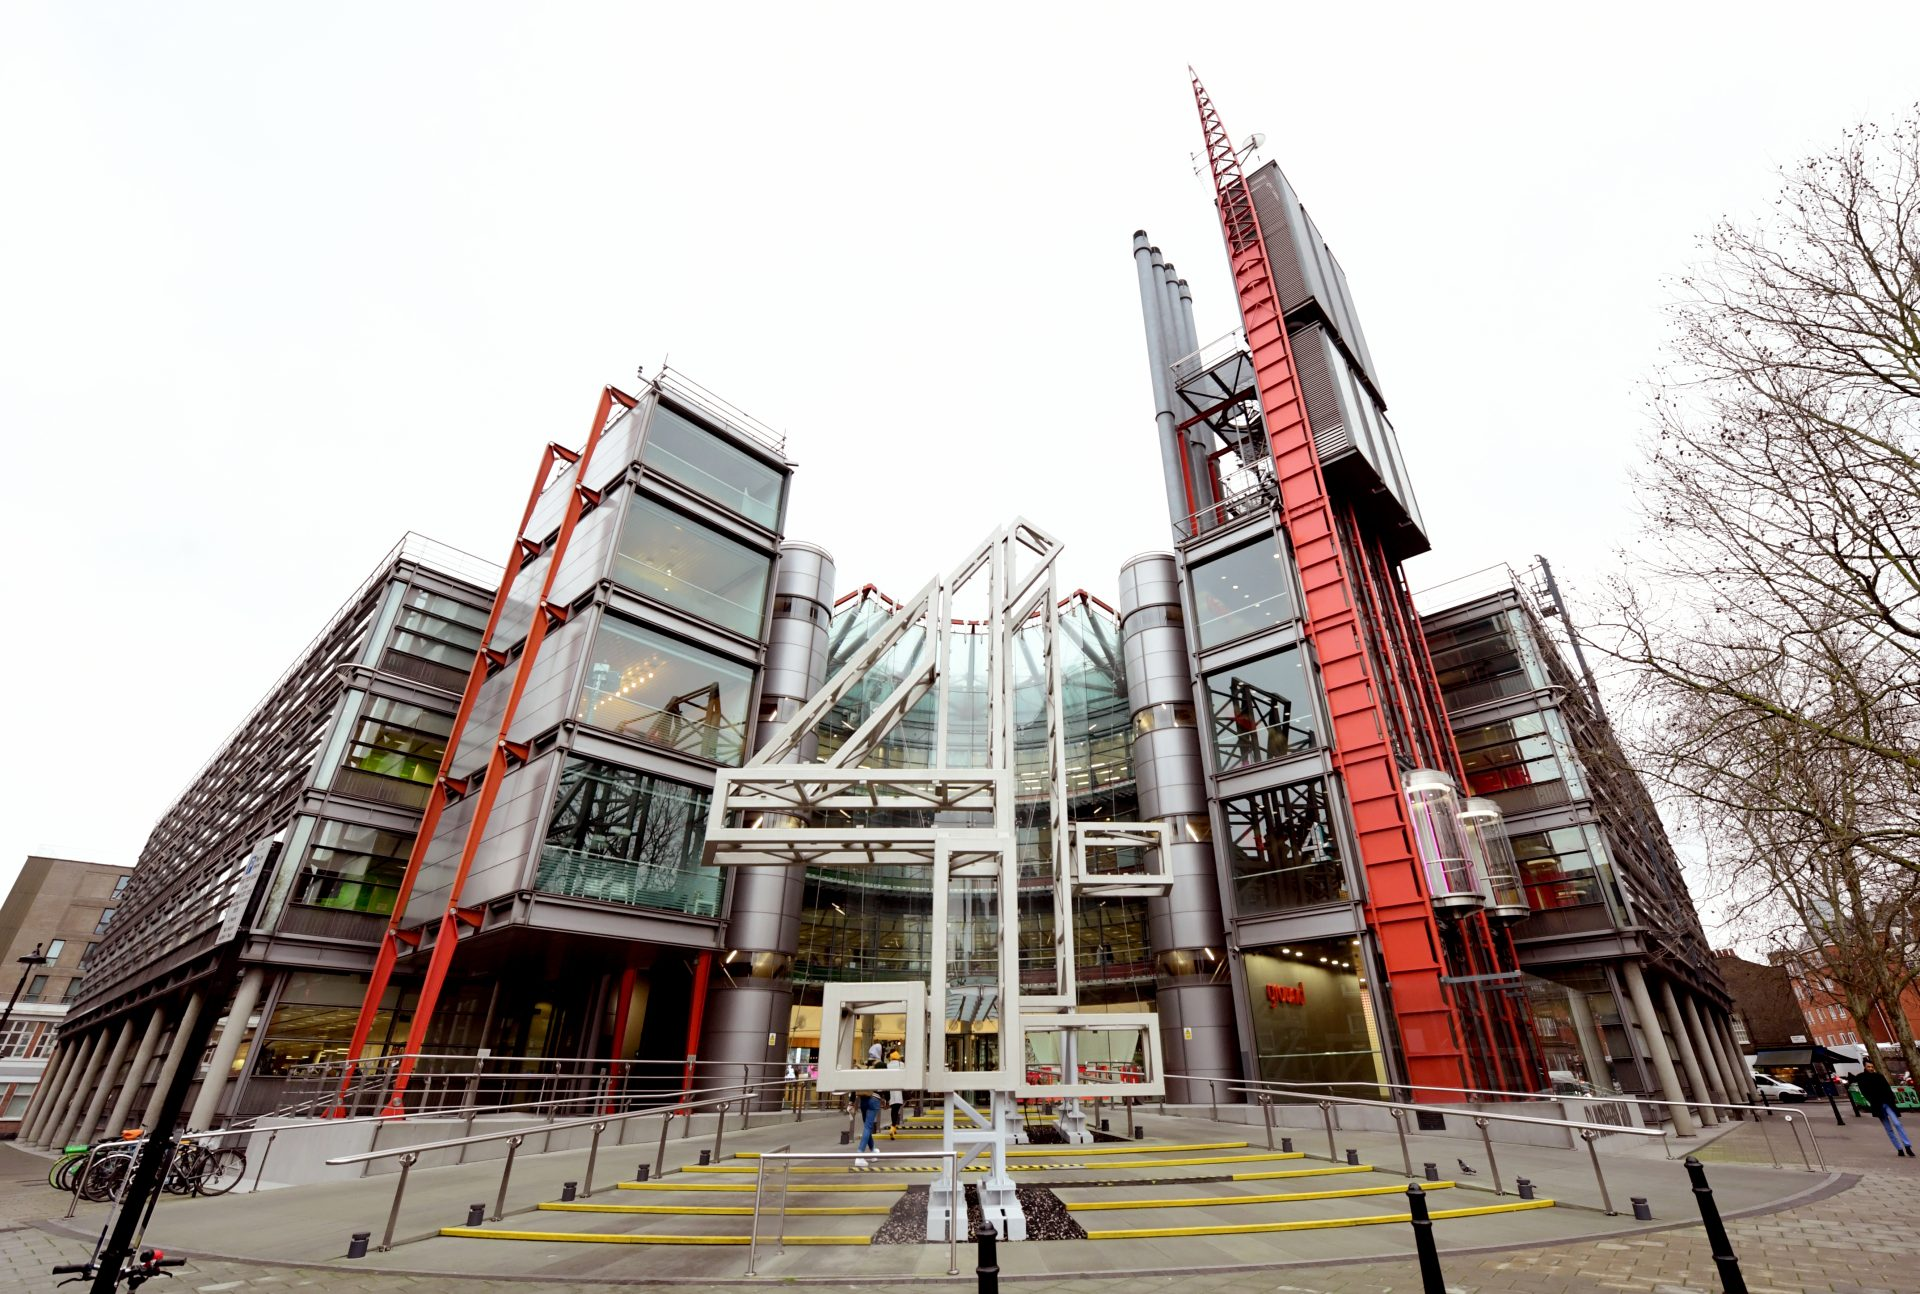 The Channel 4 building in London. Photograph: Ian West/PA Archive/PA Images.